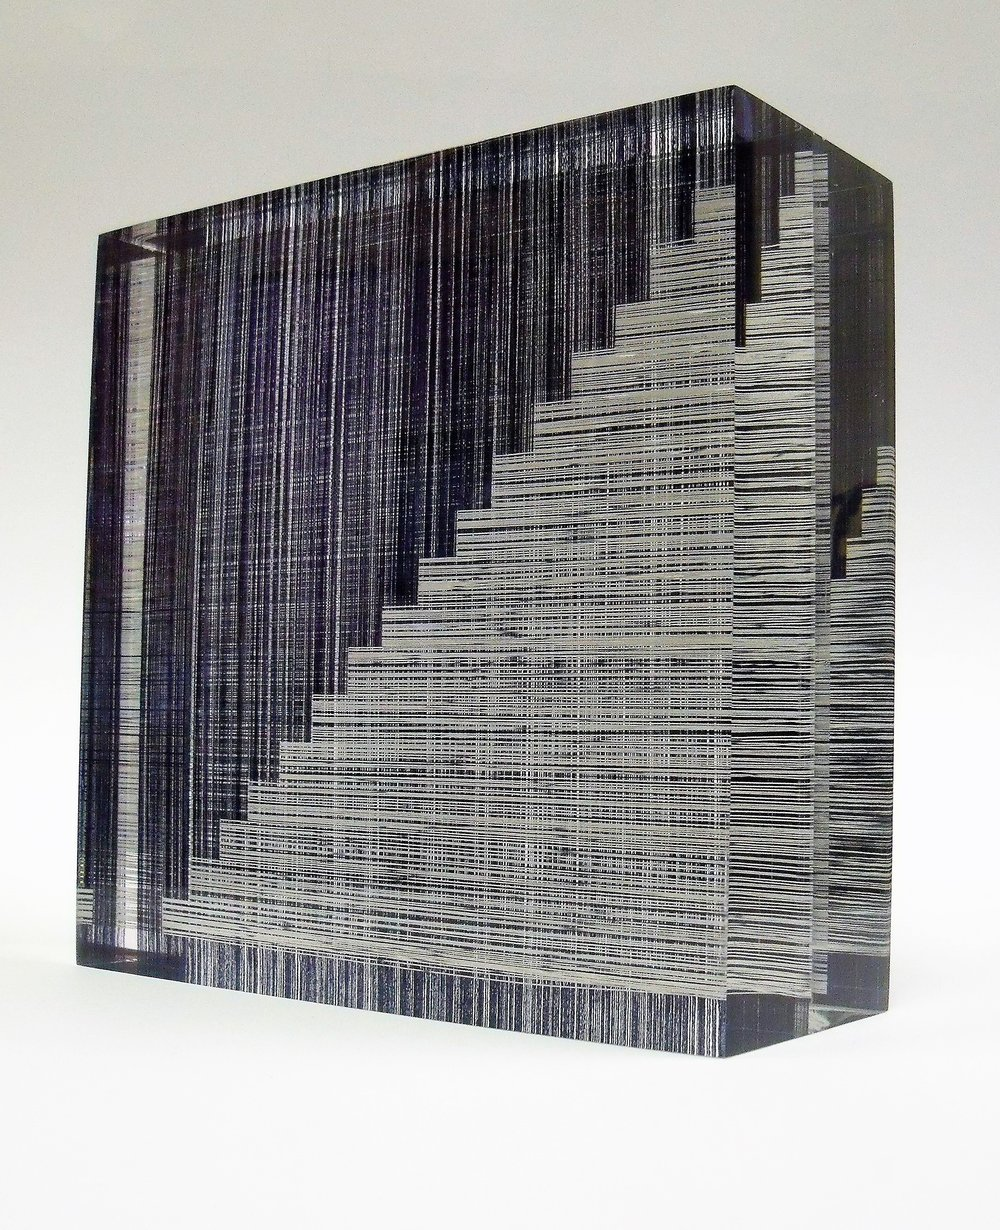 'Stepped', cotton, light reflective yarn and acrylic resin